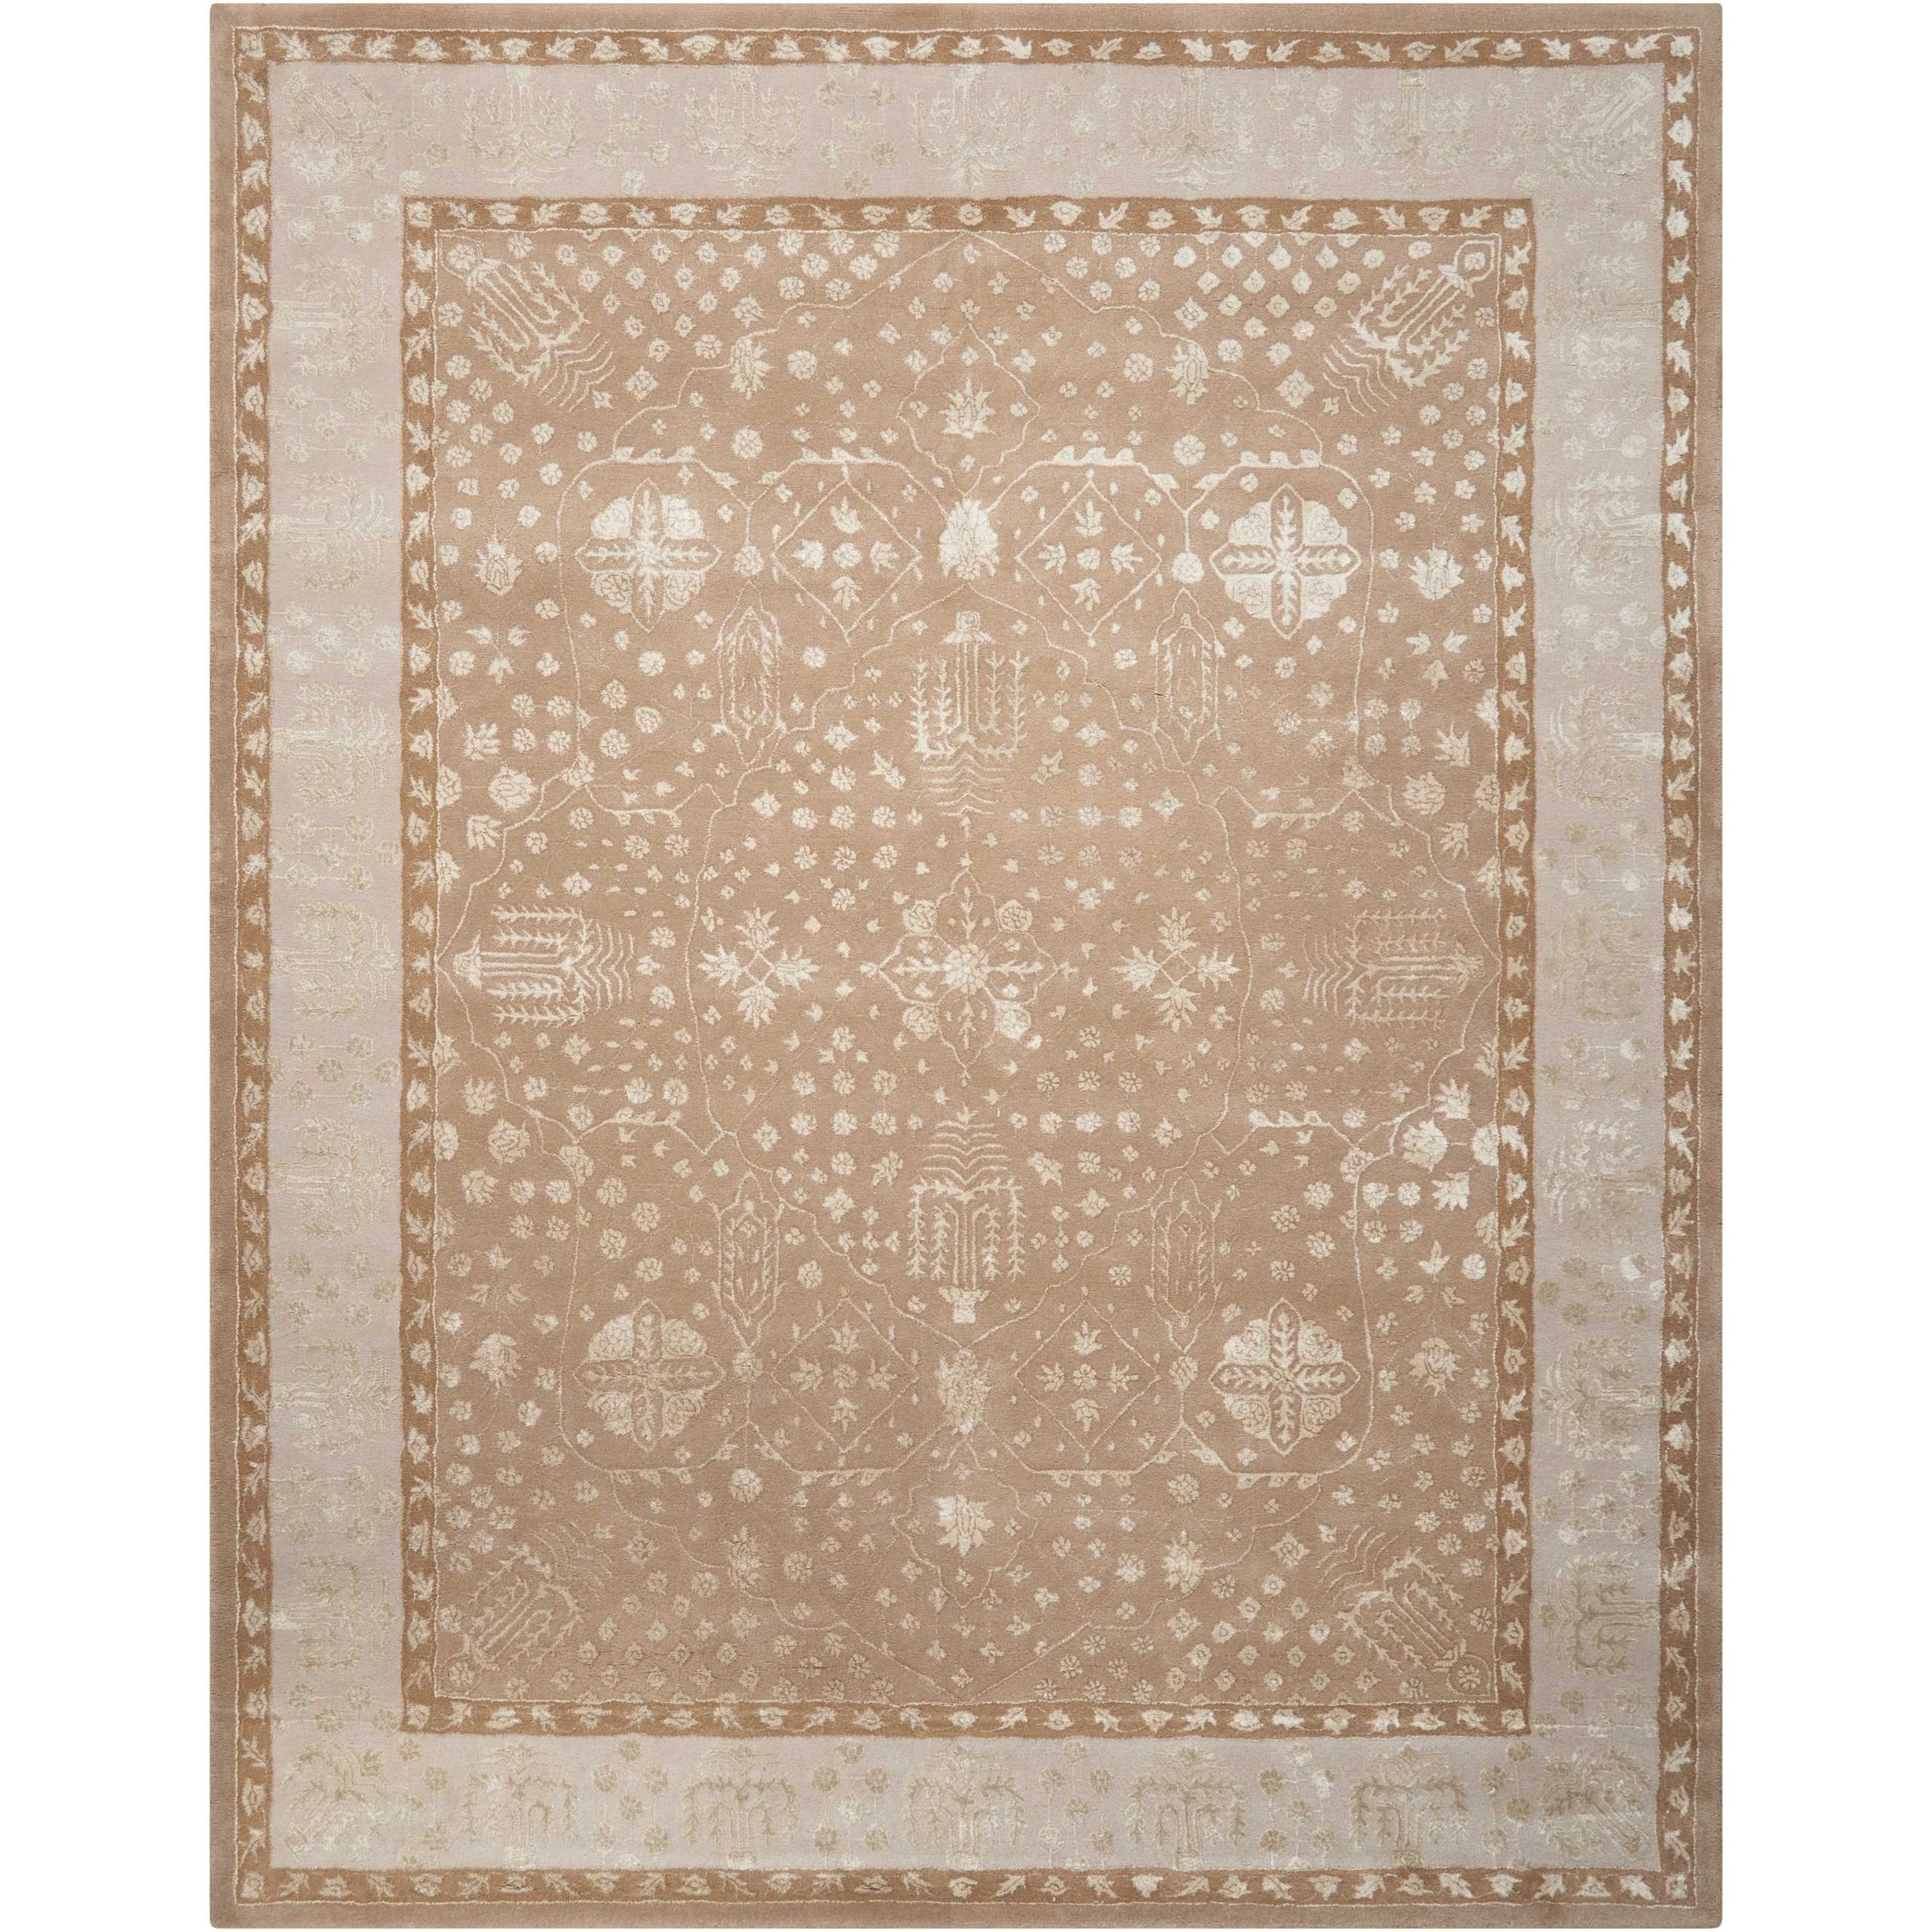 8' x 11' Warmtaupe Rectangle Rug